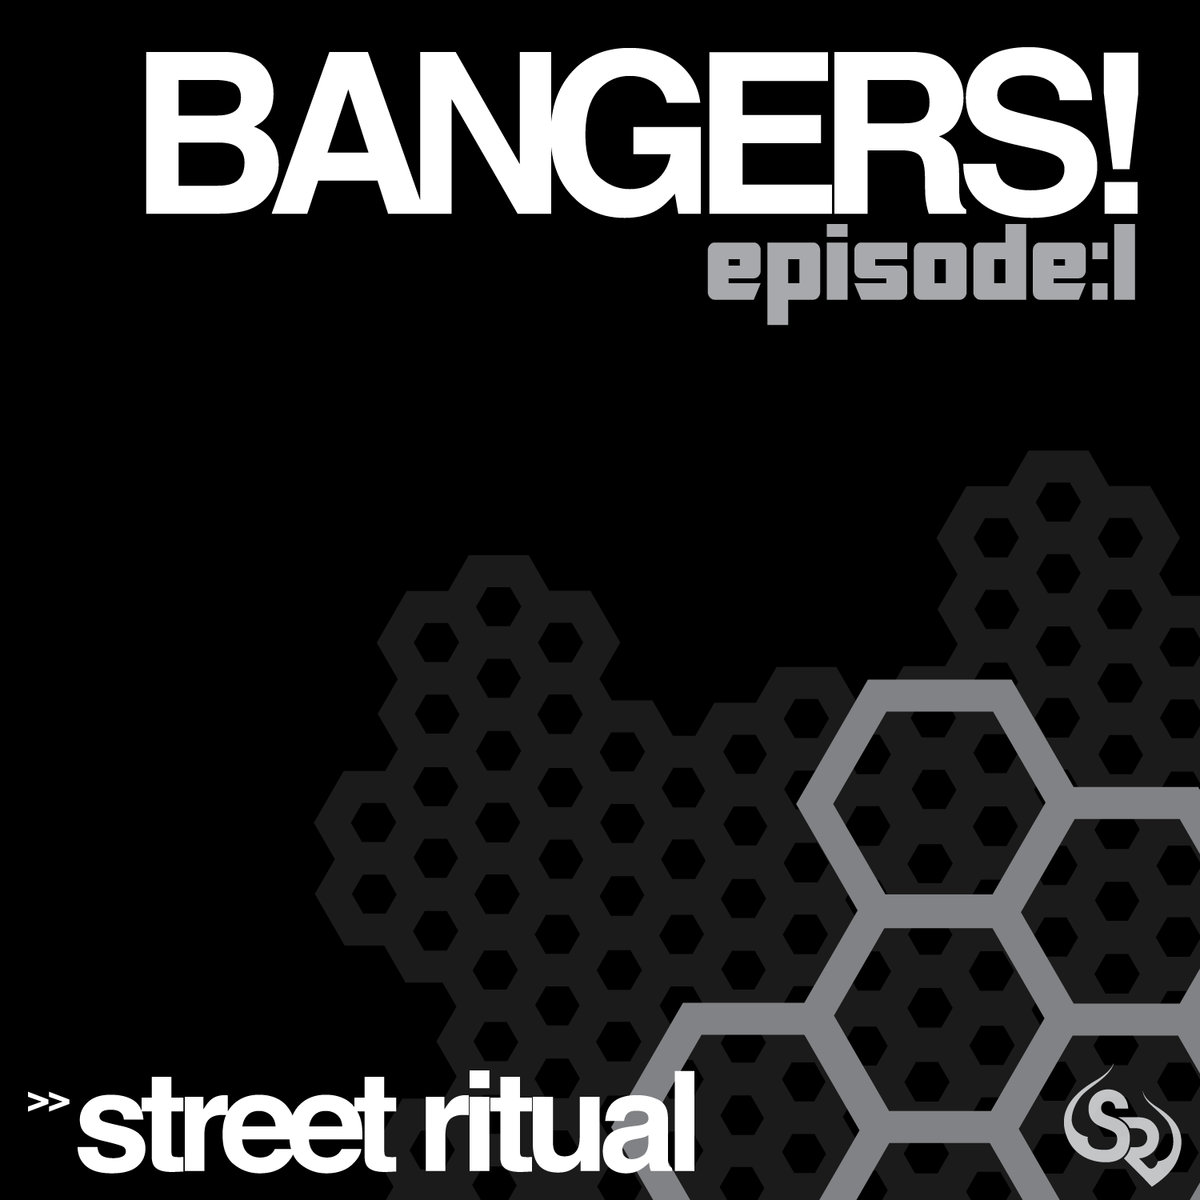 Juicy J - Bands A Make Her Dance (MiHKAL REMiXXX) @ 'Various Artists - Bangers! Episode:1' album (bass, electronic)